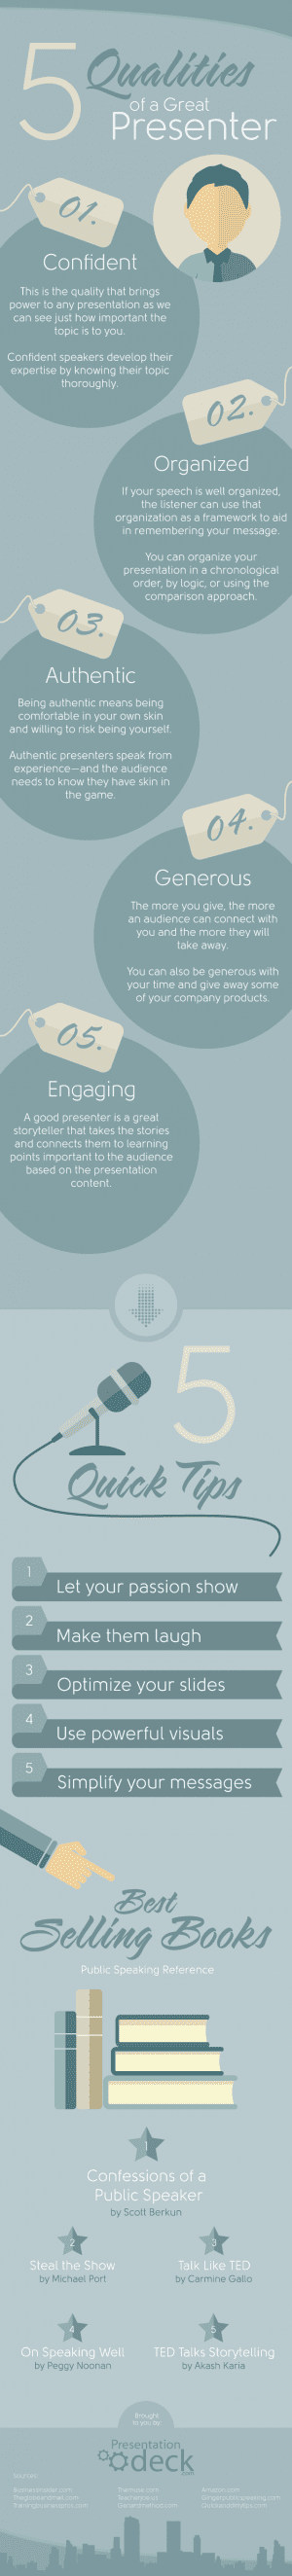 5 Qualities of a Great Presenter